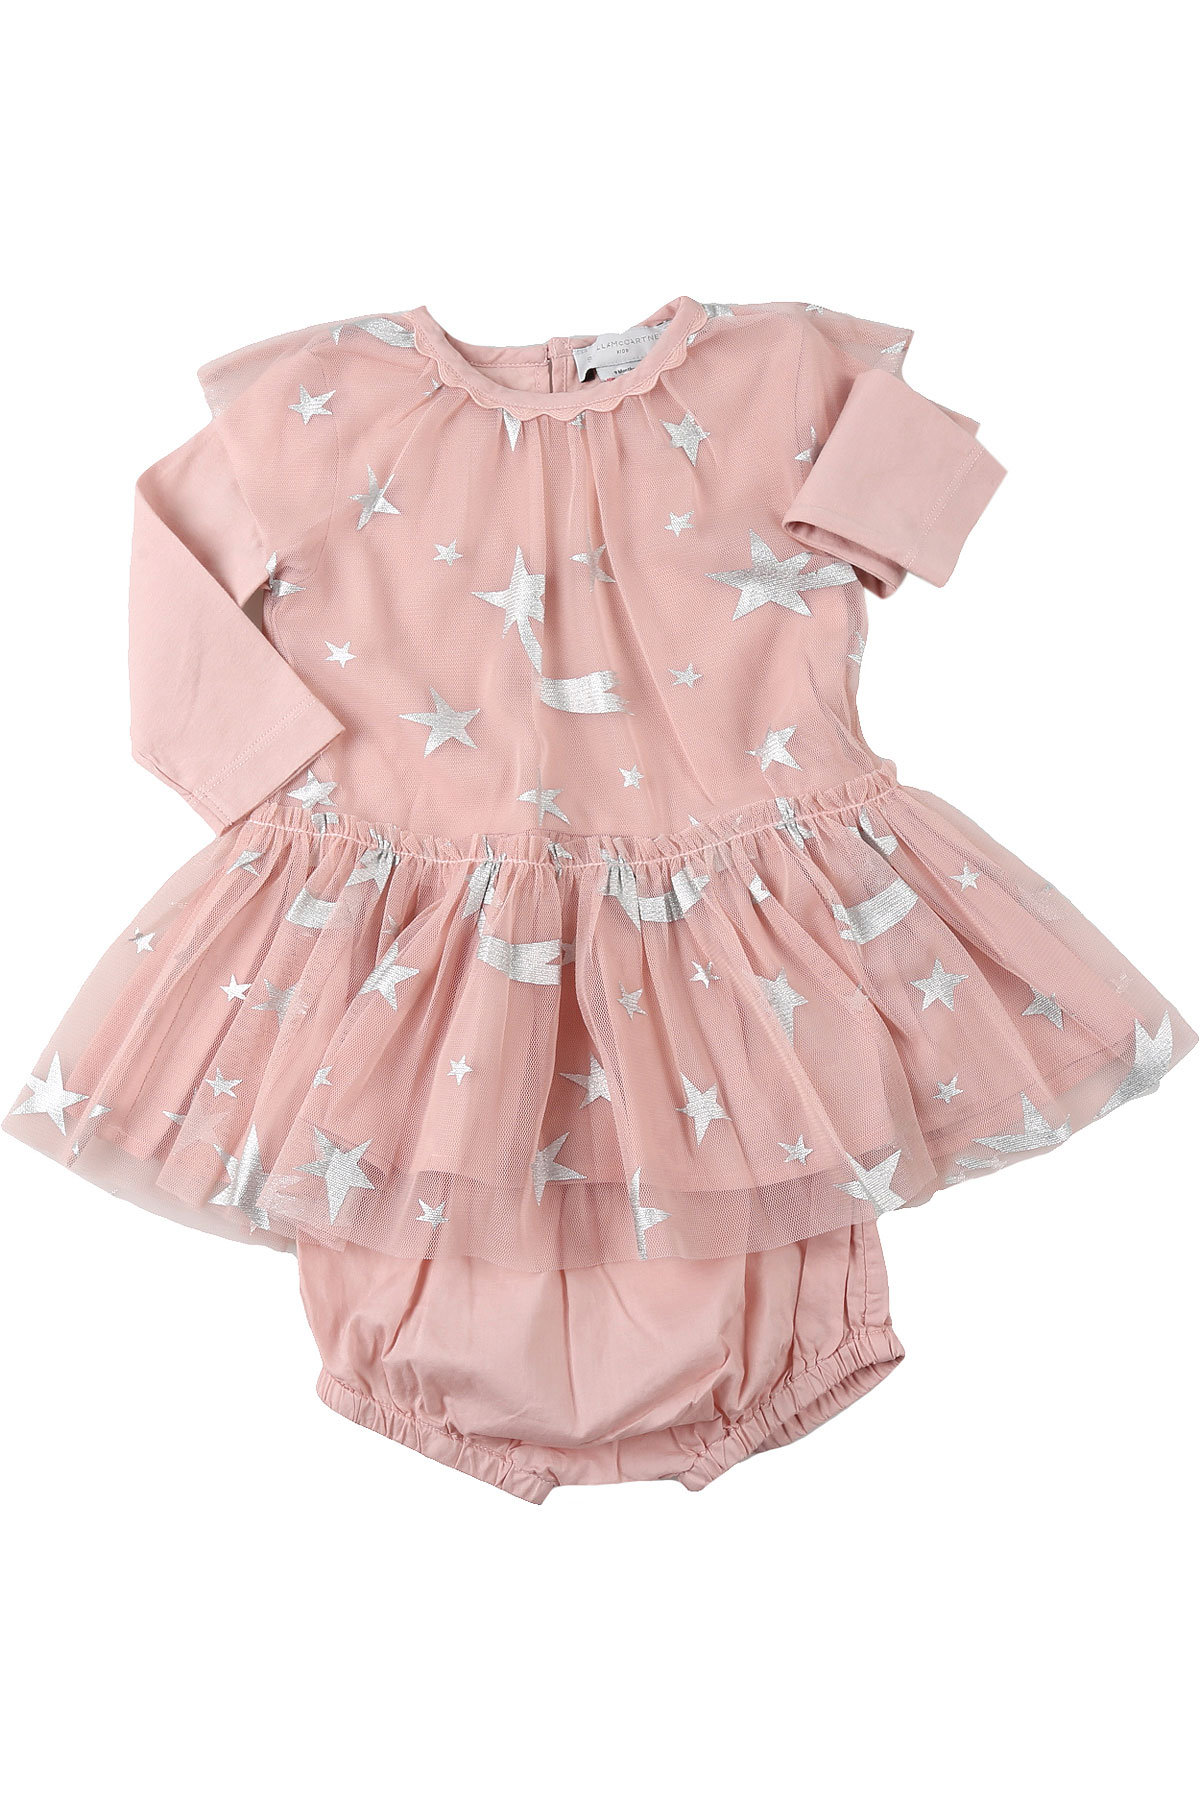 Stella McCartney Baby Dress for Girls On Sale, Pink, polyester, 2019, 12M 18M 2Y 3Y 9M